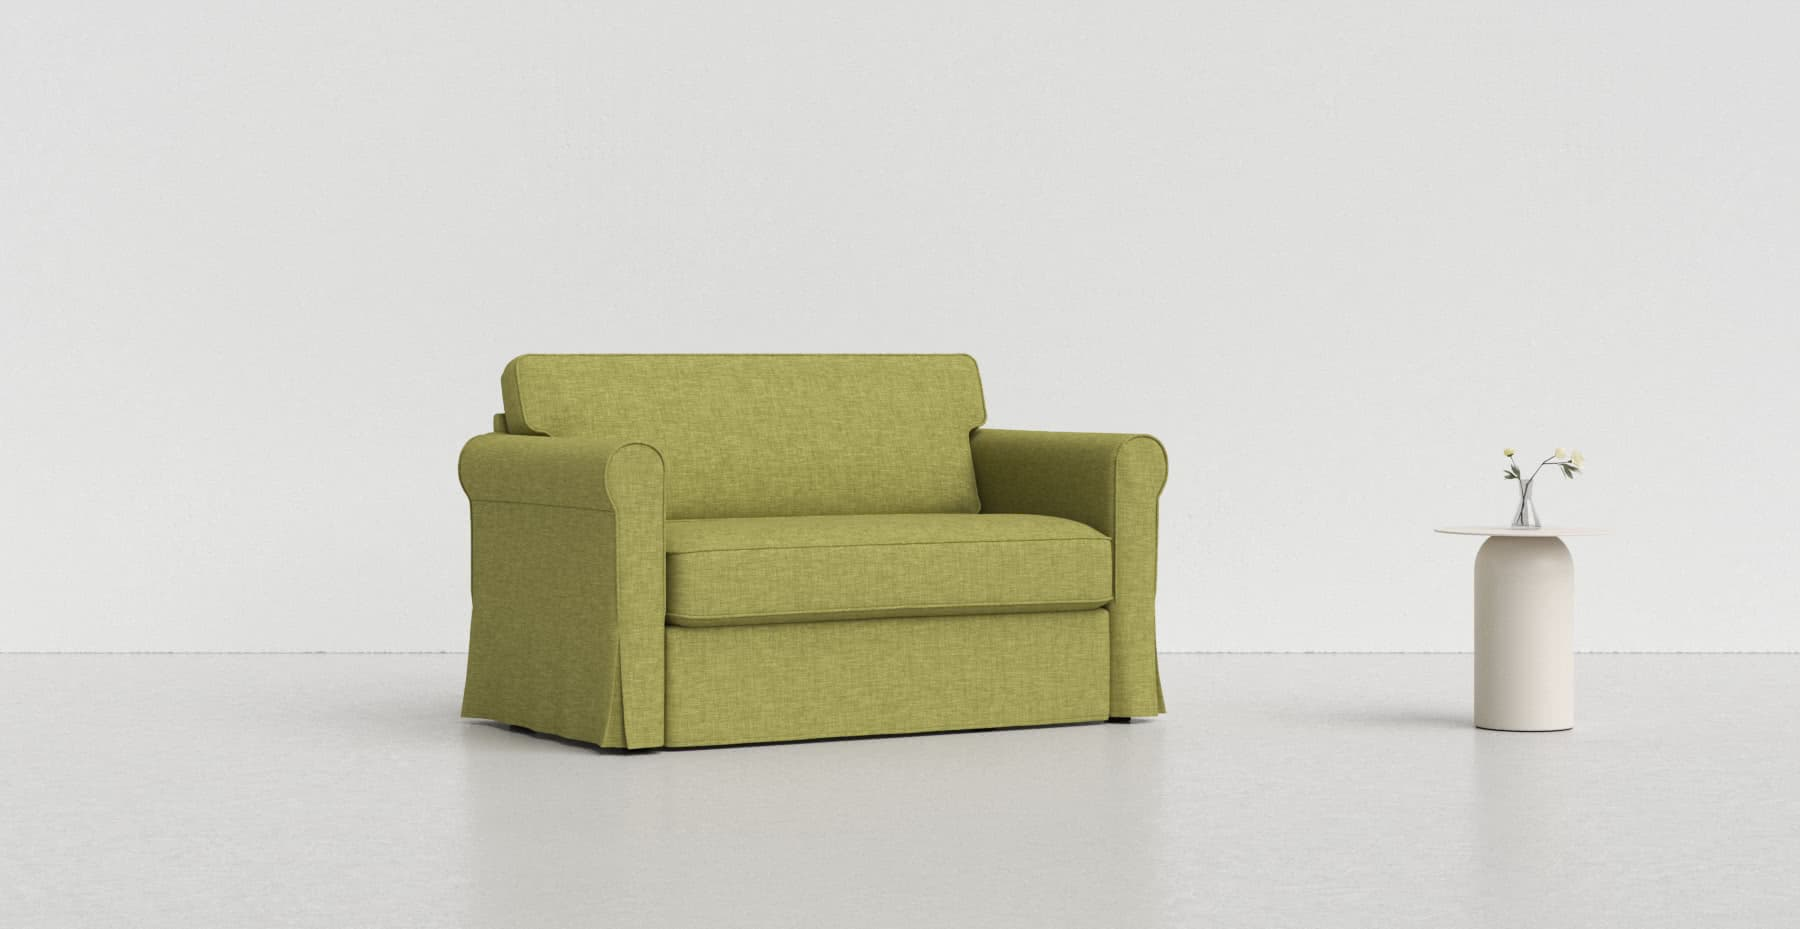 Swell Replacement Ikea Sofa Covers For The Discontinued Hagalund Gmtry Best Dining Table And Chair Ideas Images Gmtryco